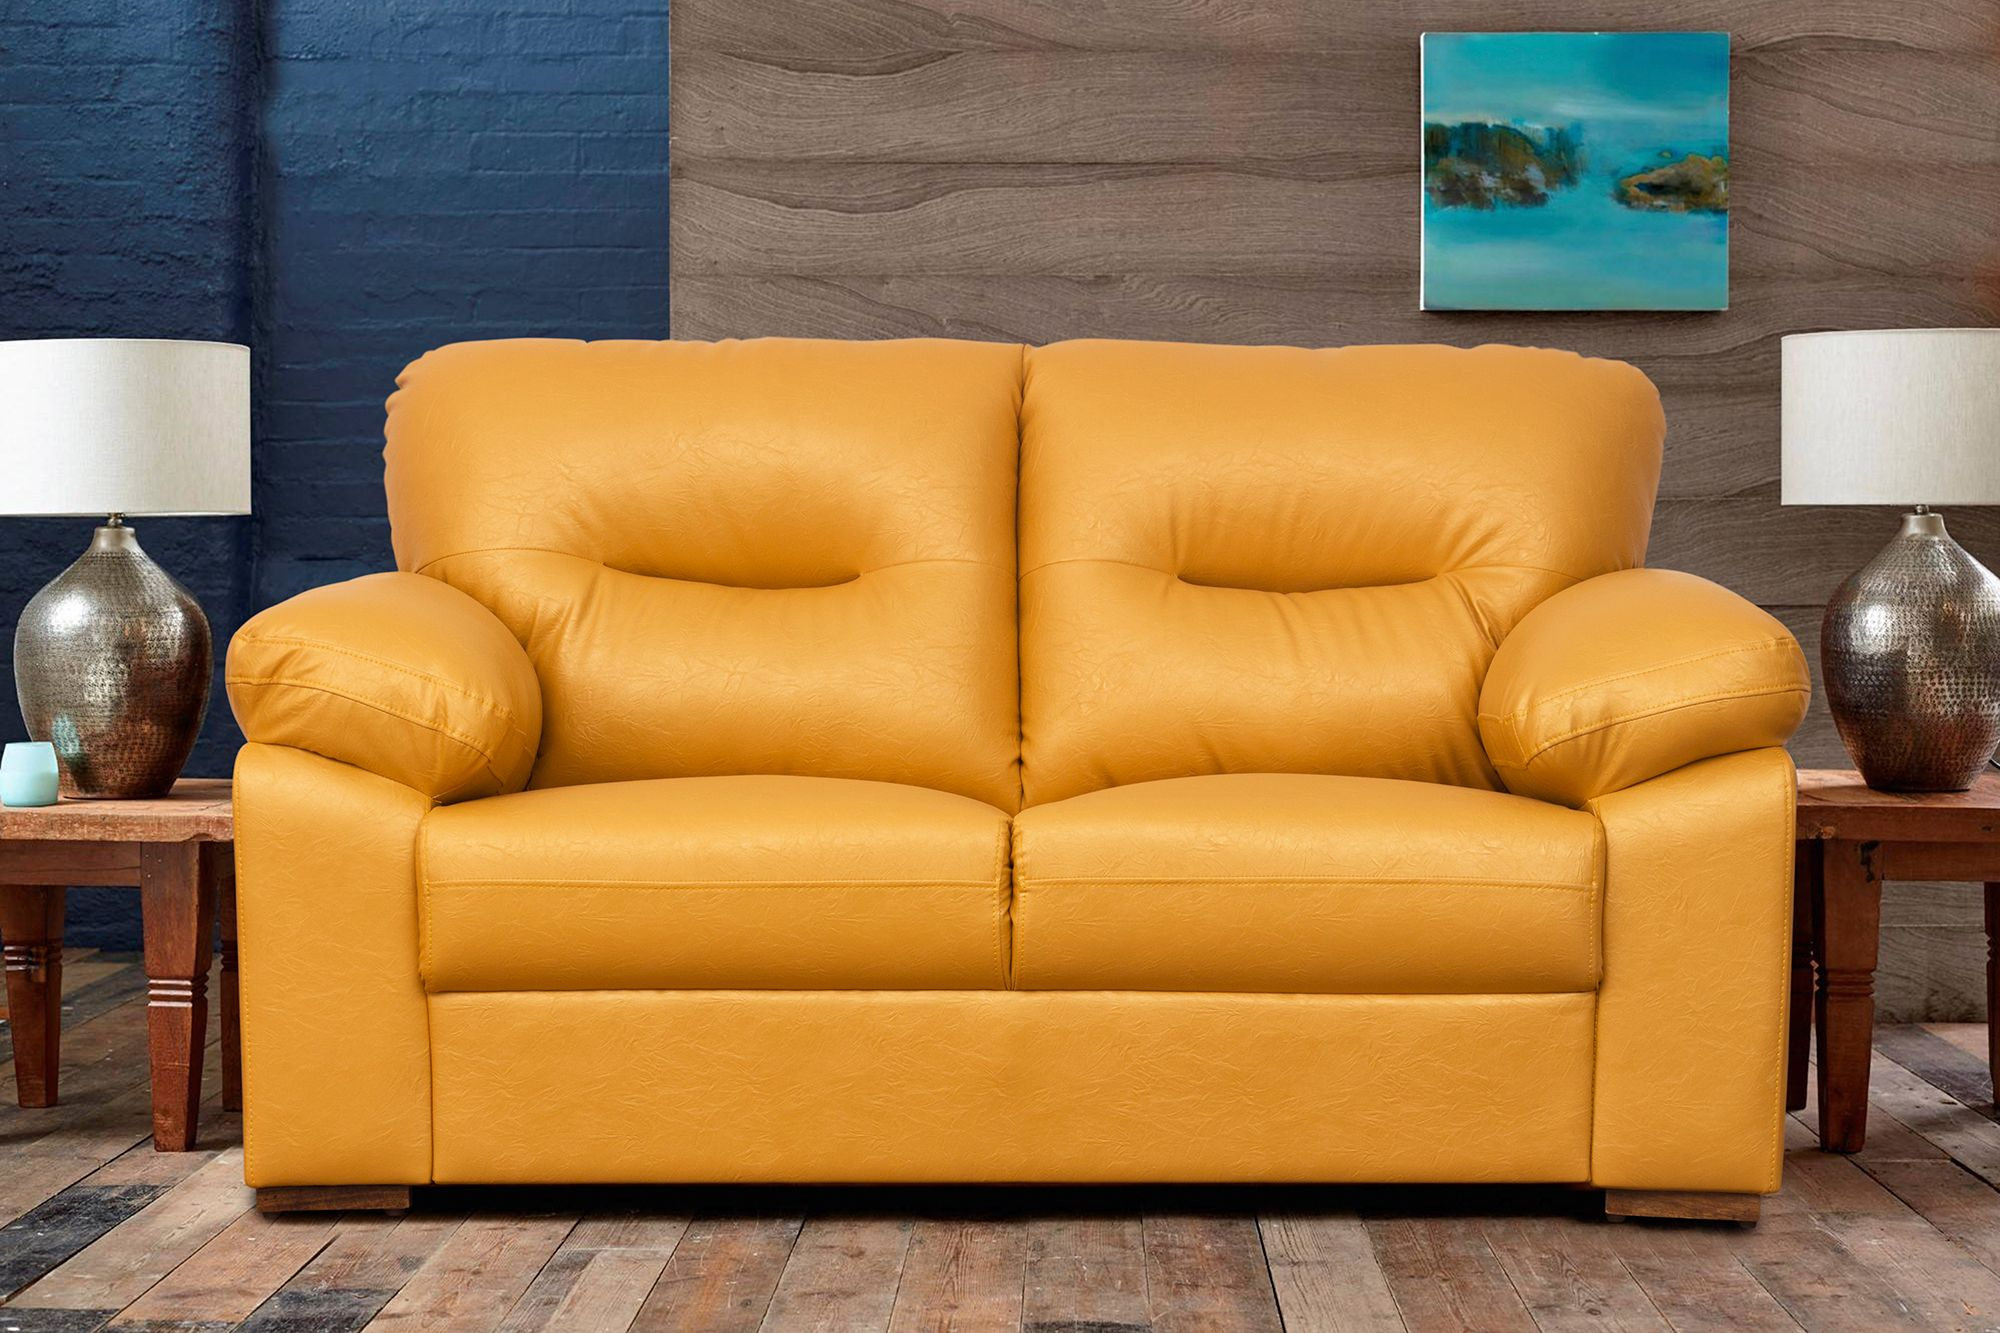 Sofa House Kirti Nagar Galaxy 2 Seater Yellow Leatherite Sofa Mrp Rs 41 600 00 Offer